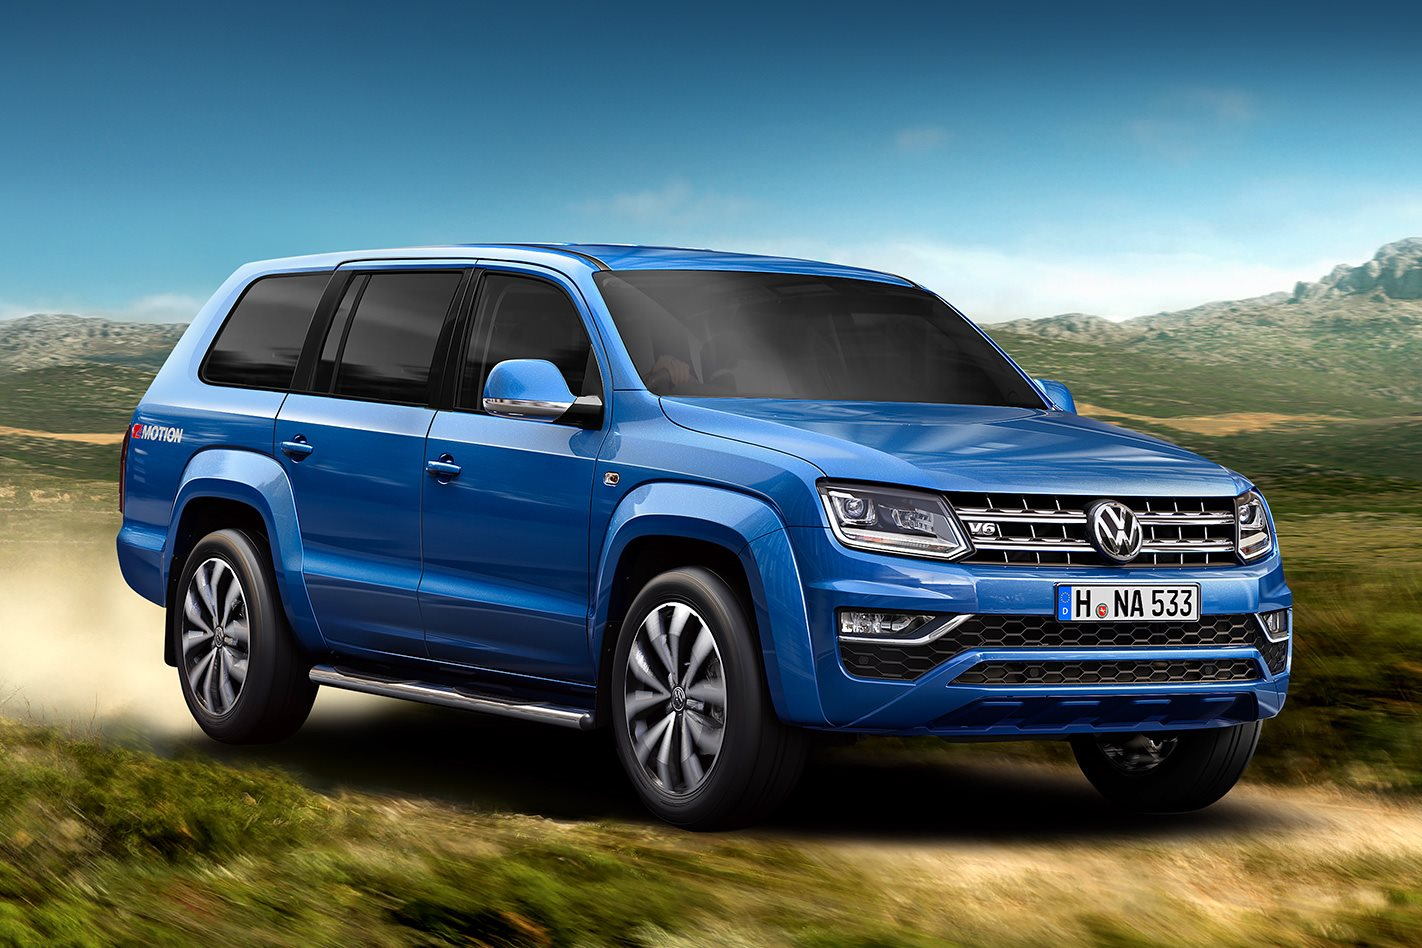 volkswagen hints at seven seat wagon 4x4 australia. Black Bedroom Furniture Sets. Home Design Ideas